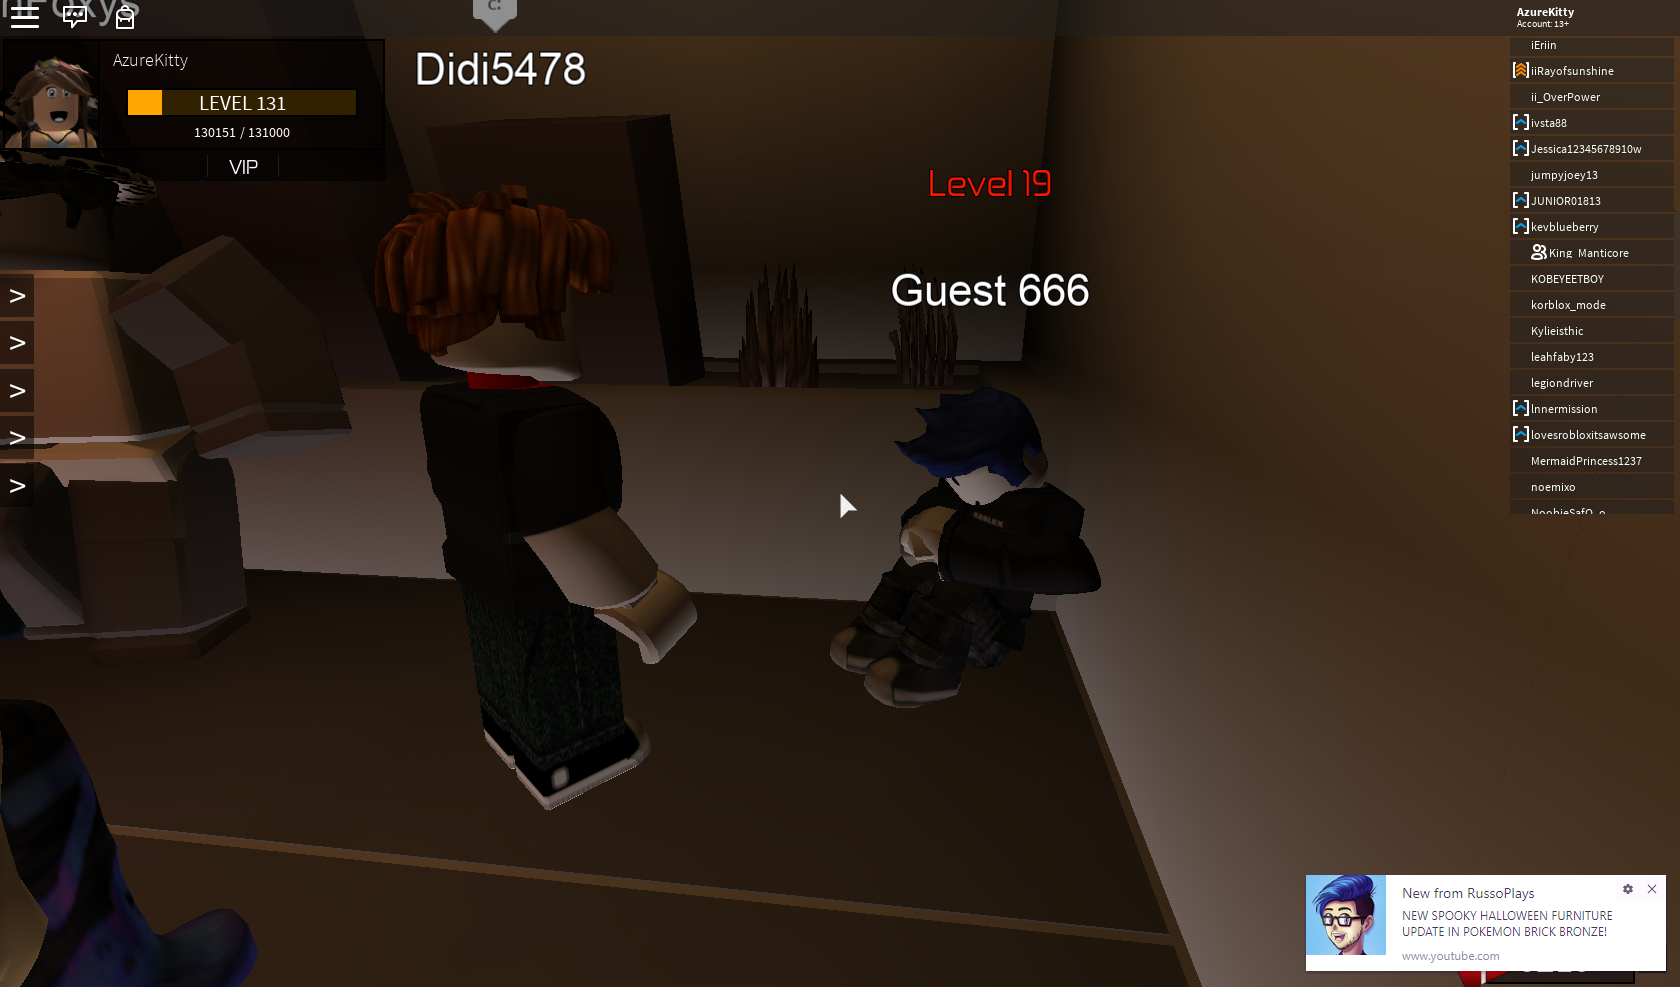 Guest 666 was scared